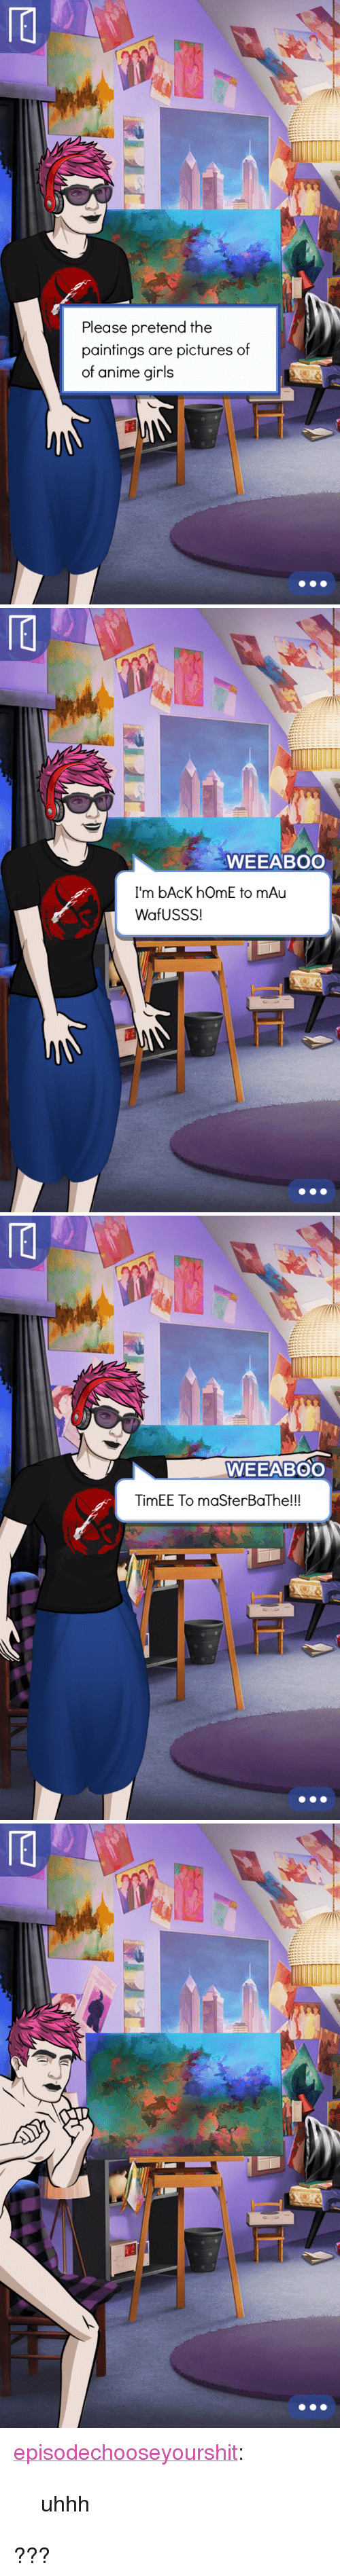 """Uhhh: Please pretend the  paintings are pictures of  of anime girls   WEEABOO  I'm bAcK hOmE to mAu  WafUSSS!   WEEABOO  TimEE To maSterBaThe!!! <p><a href=""""https://episodechooseyourshit.tumblr.com/post/160100624744/uhhh"""" class=""""tumblr_blog"""">episodechooseyourshit</a>:</p>  <blockquote><p>uhhh</p></blockquote>  <p>???</p>"""